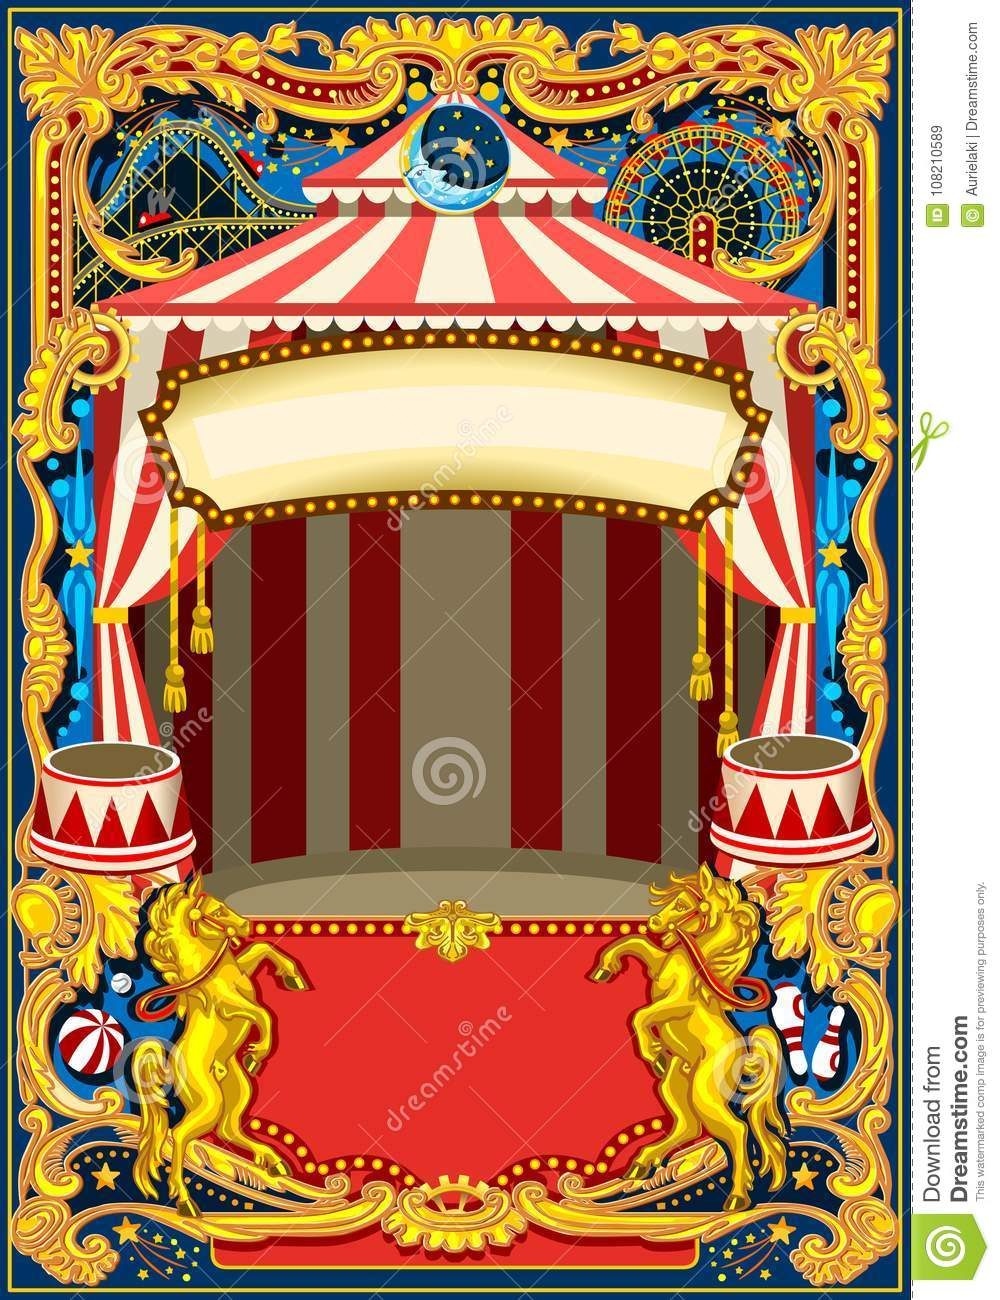 Circus Poster Vector Frame Stock Vector Illustration Of